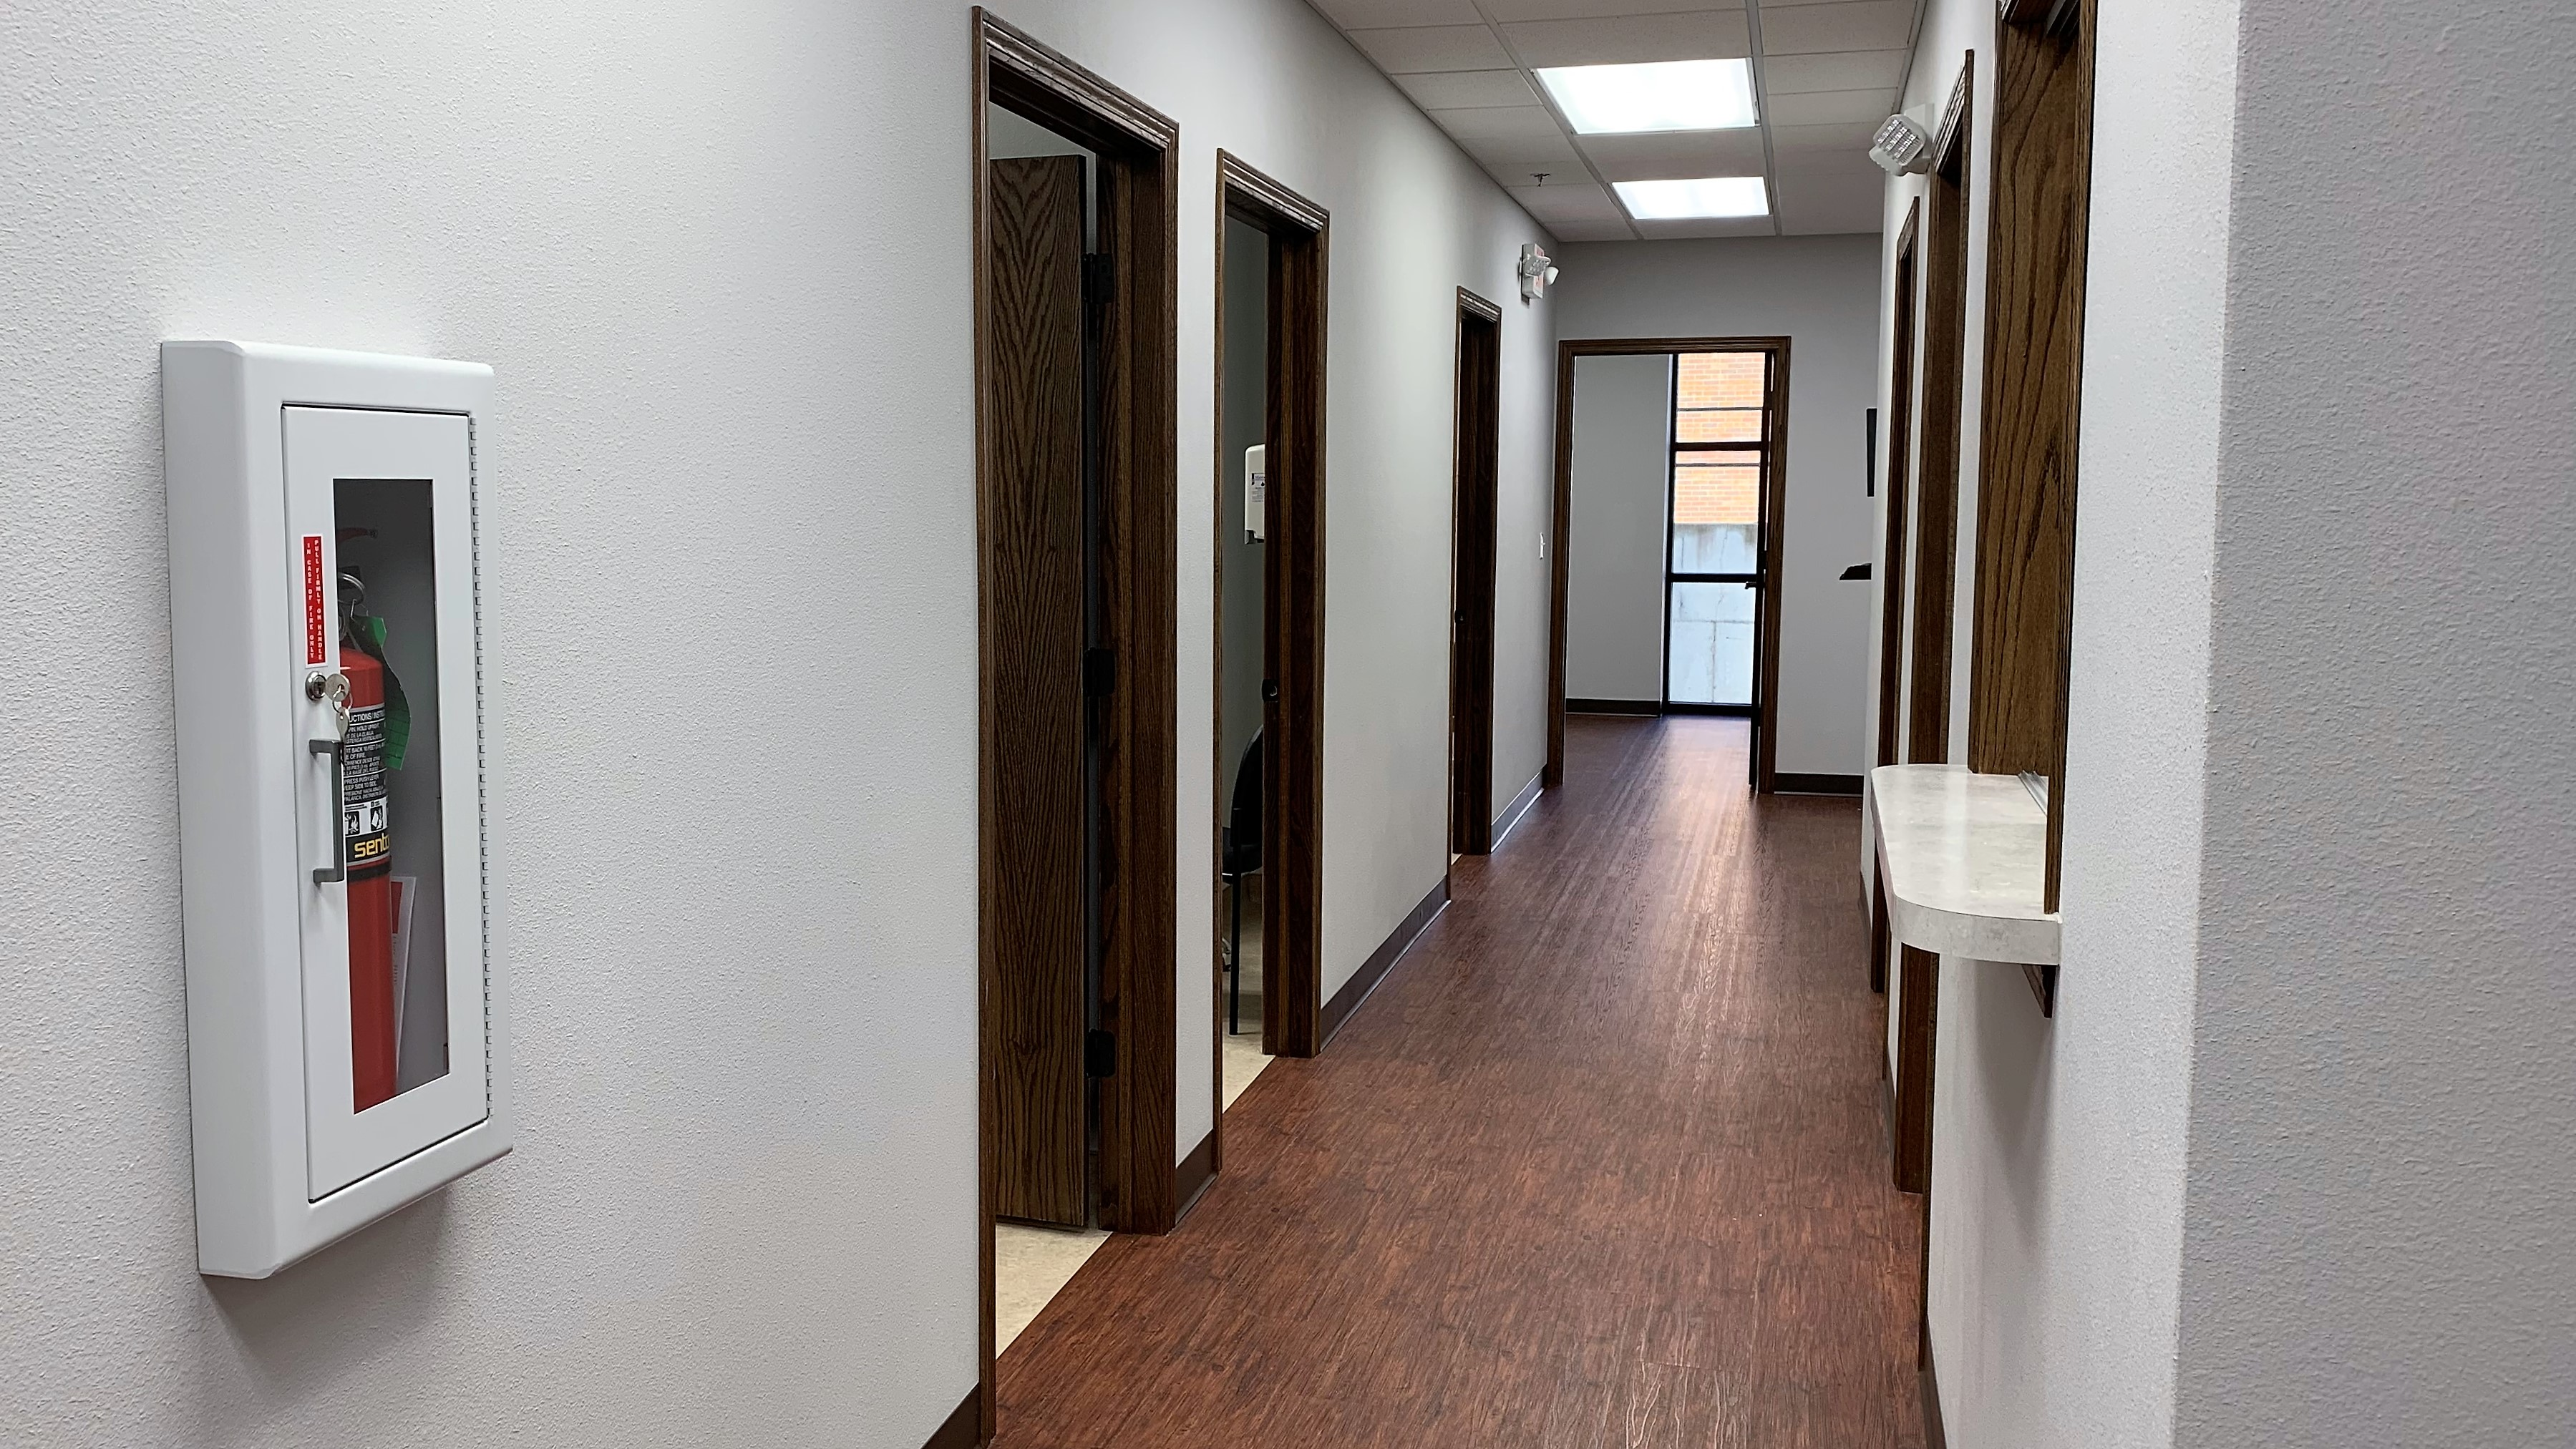 Hallway at Shoal Creek Foot & Ankle Center